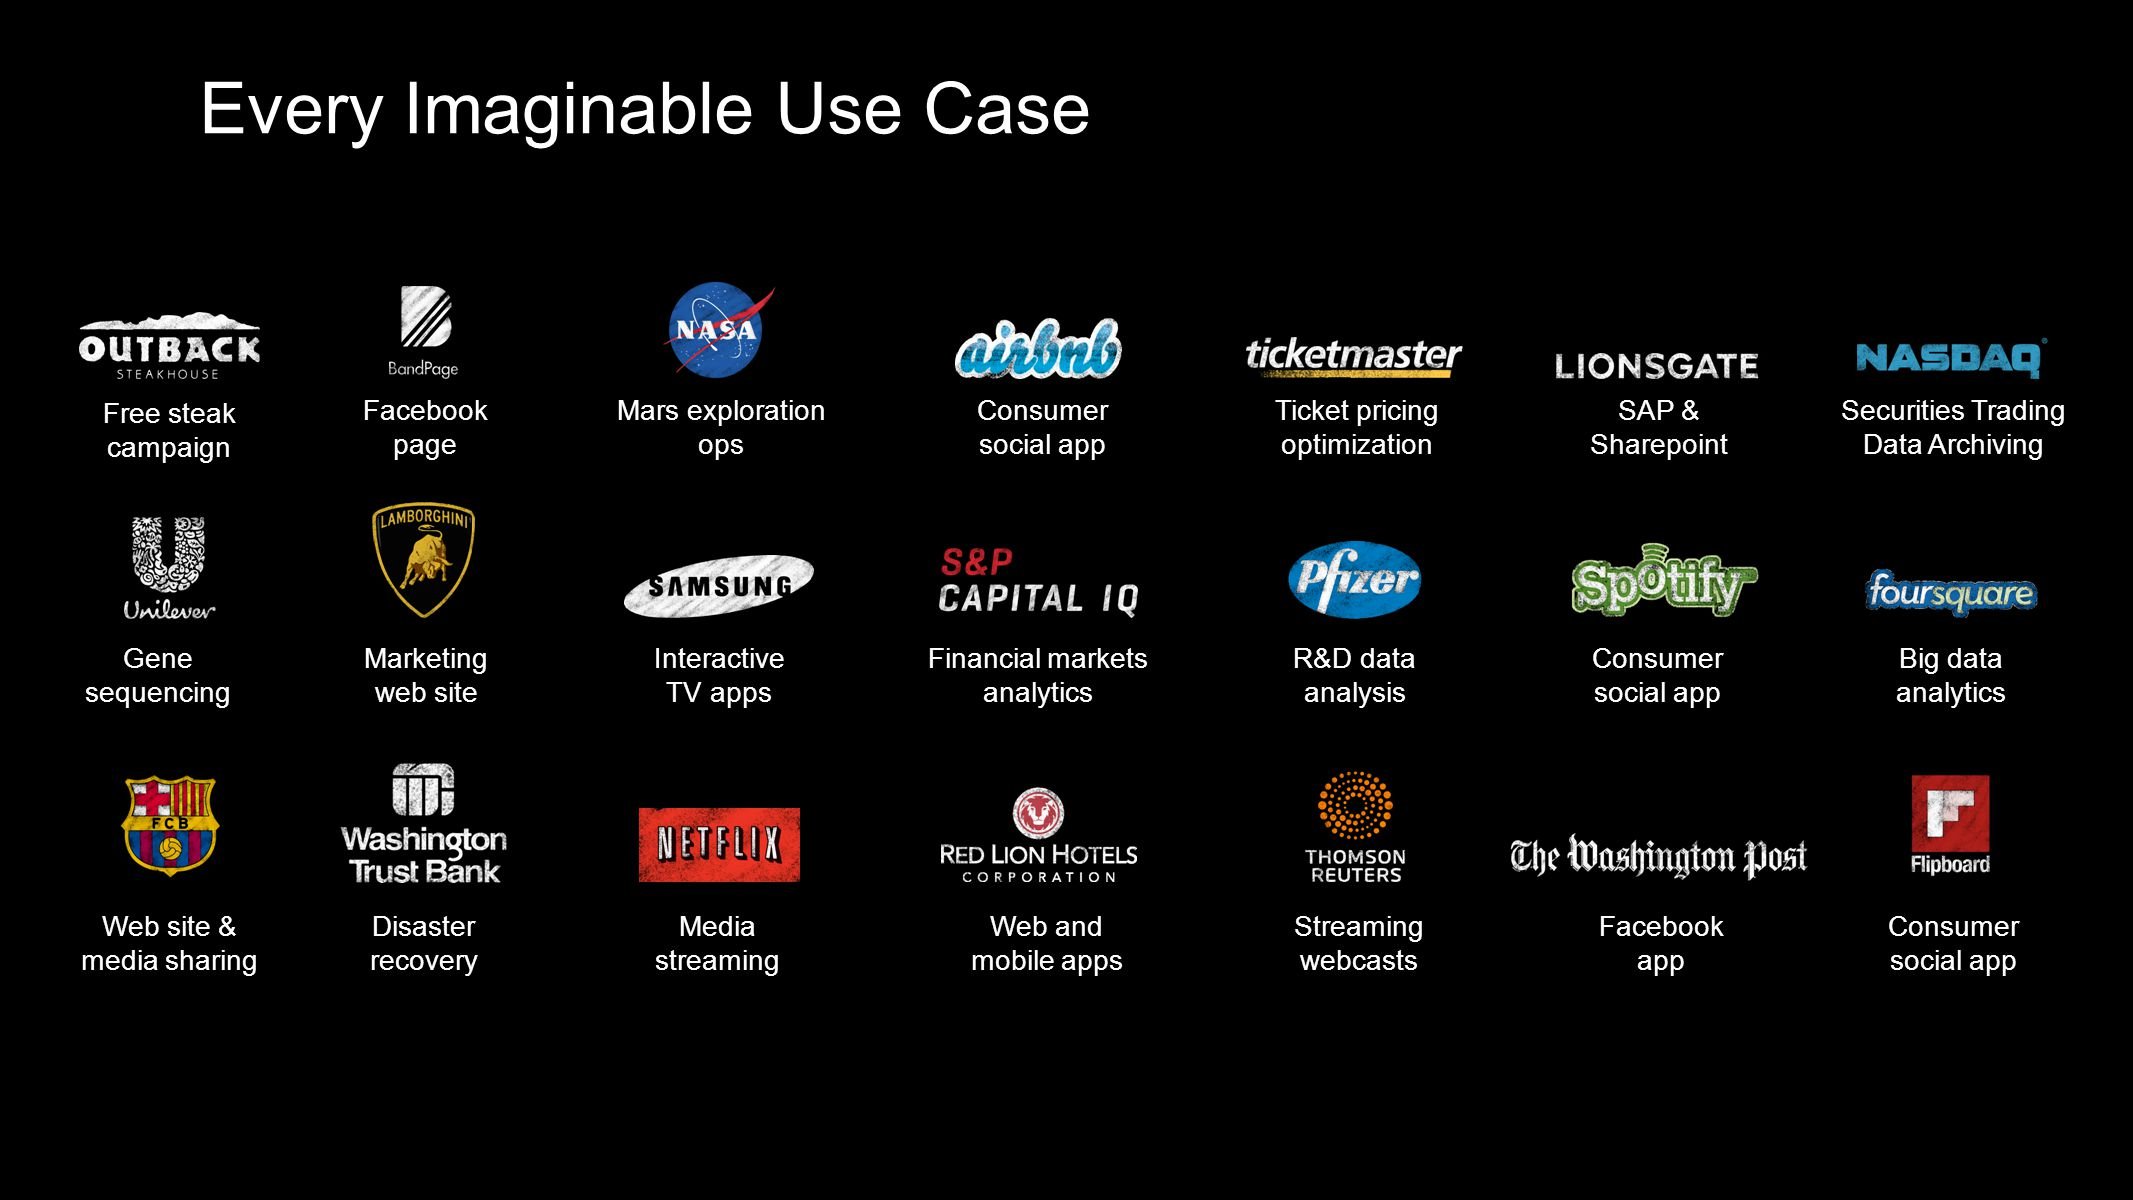 Every Imaginable Use Case